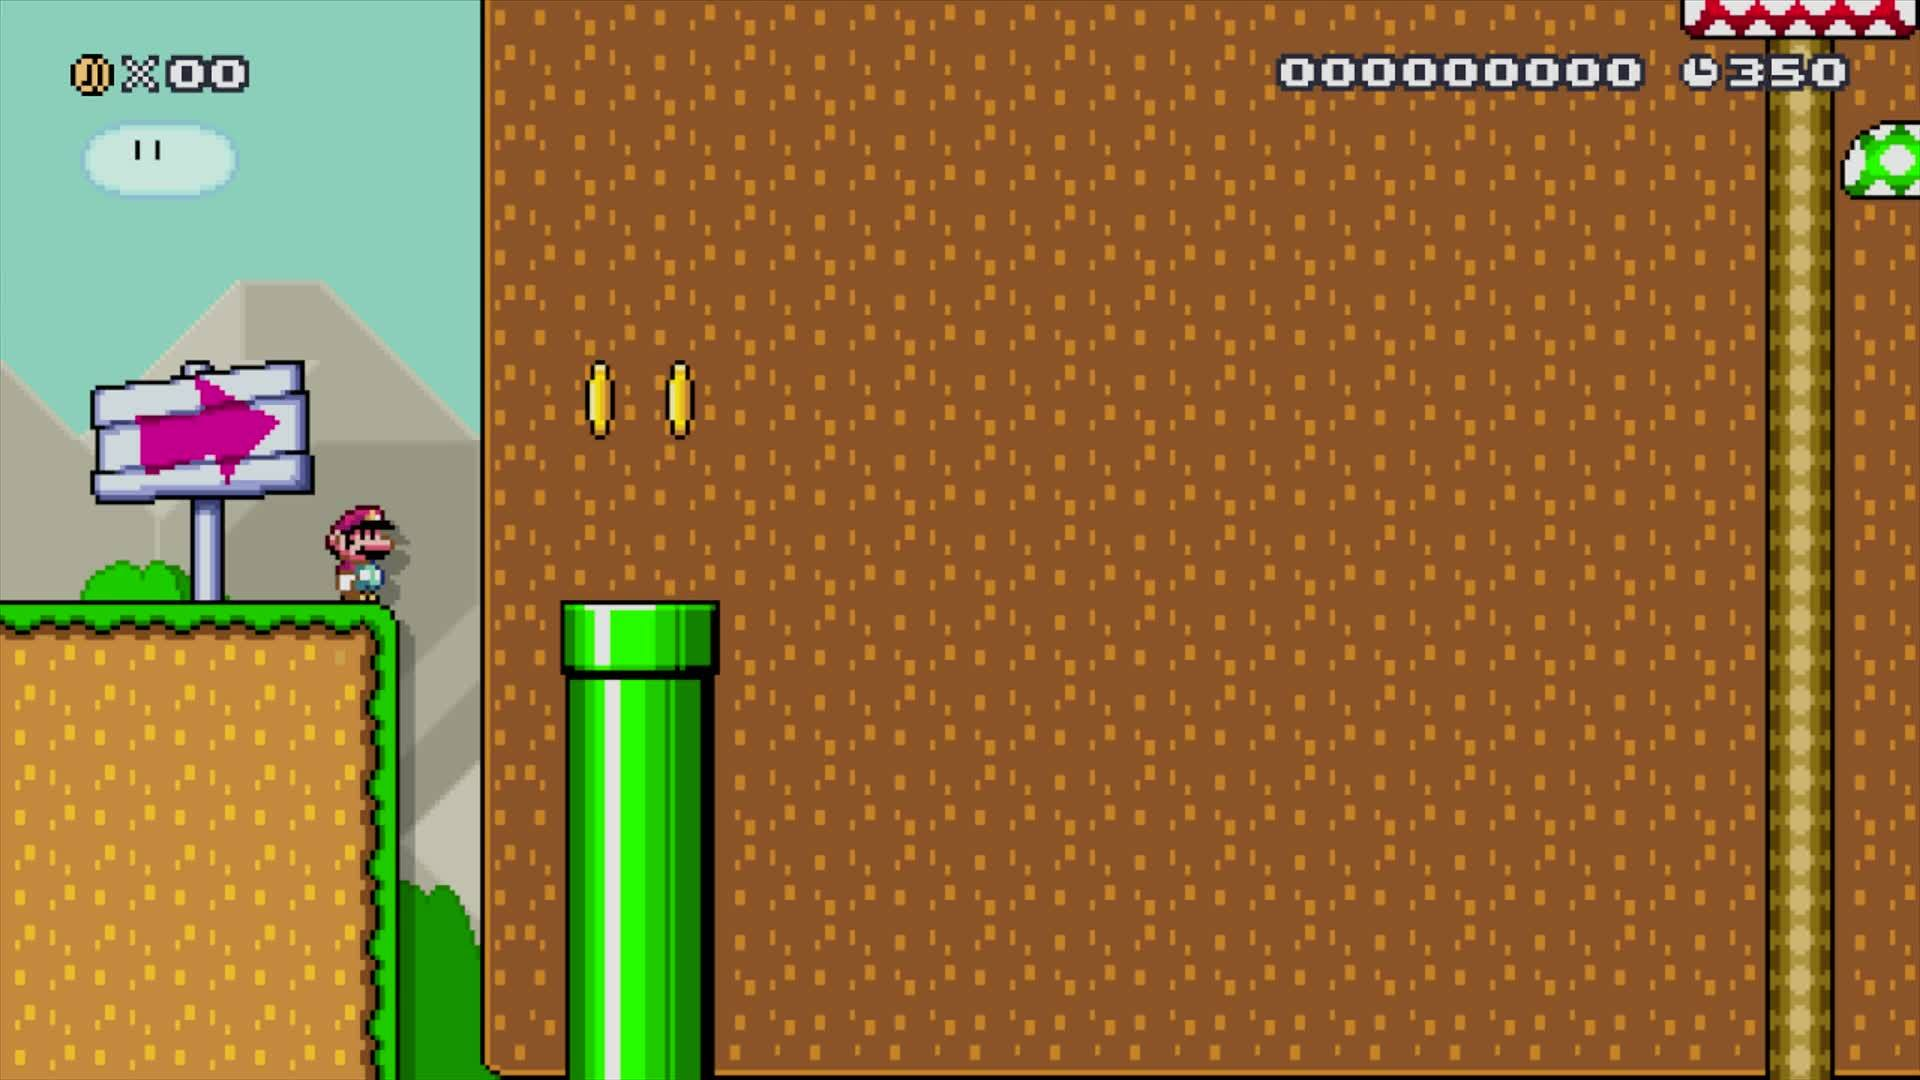 Mario, MarioMaker, SuperMarioMaker, Super Mario Maker - The Spin Jump Challenge! (Preview) GIFs